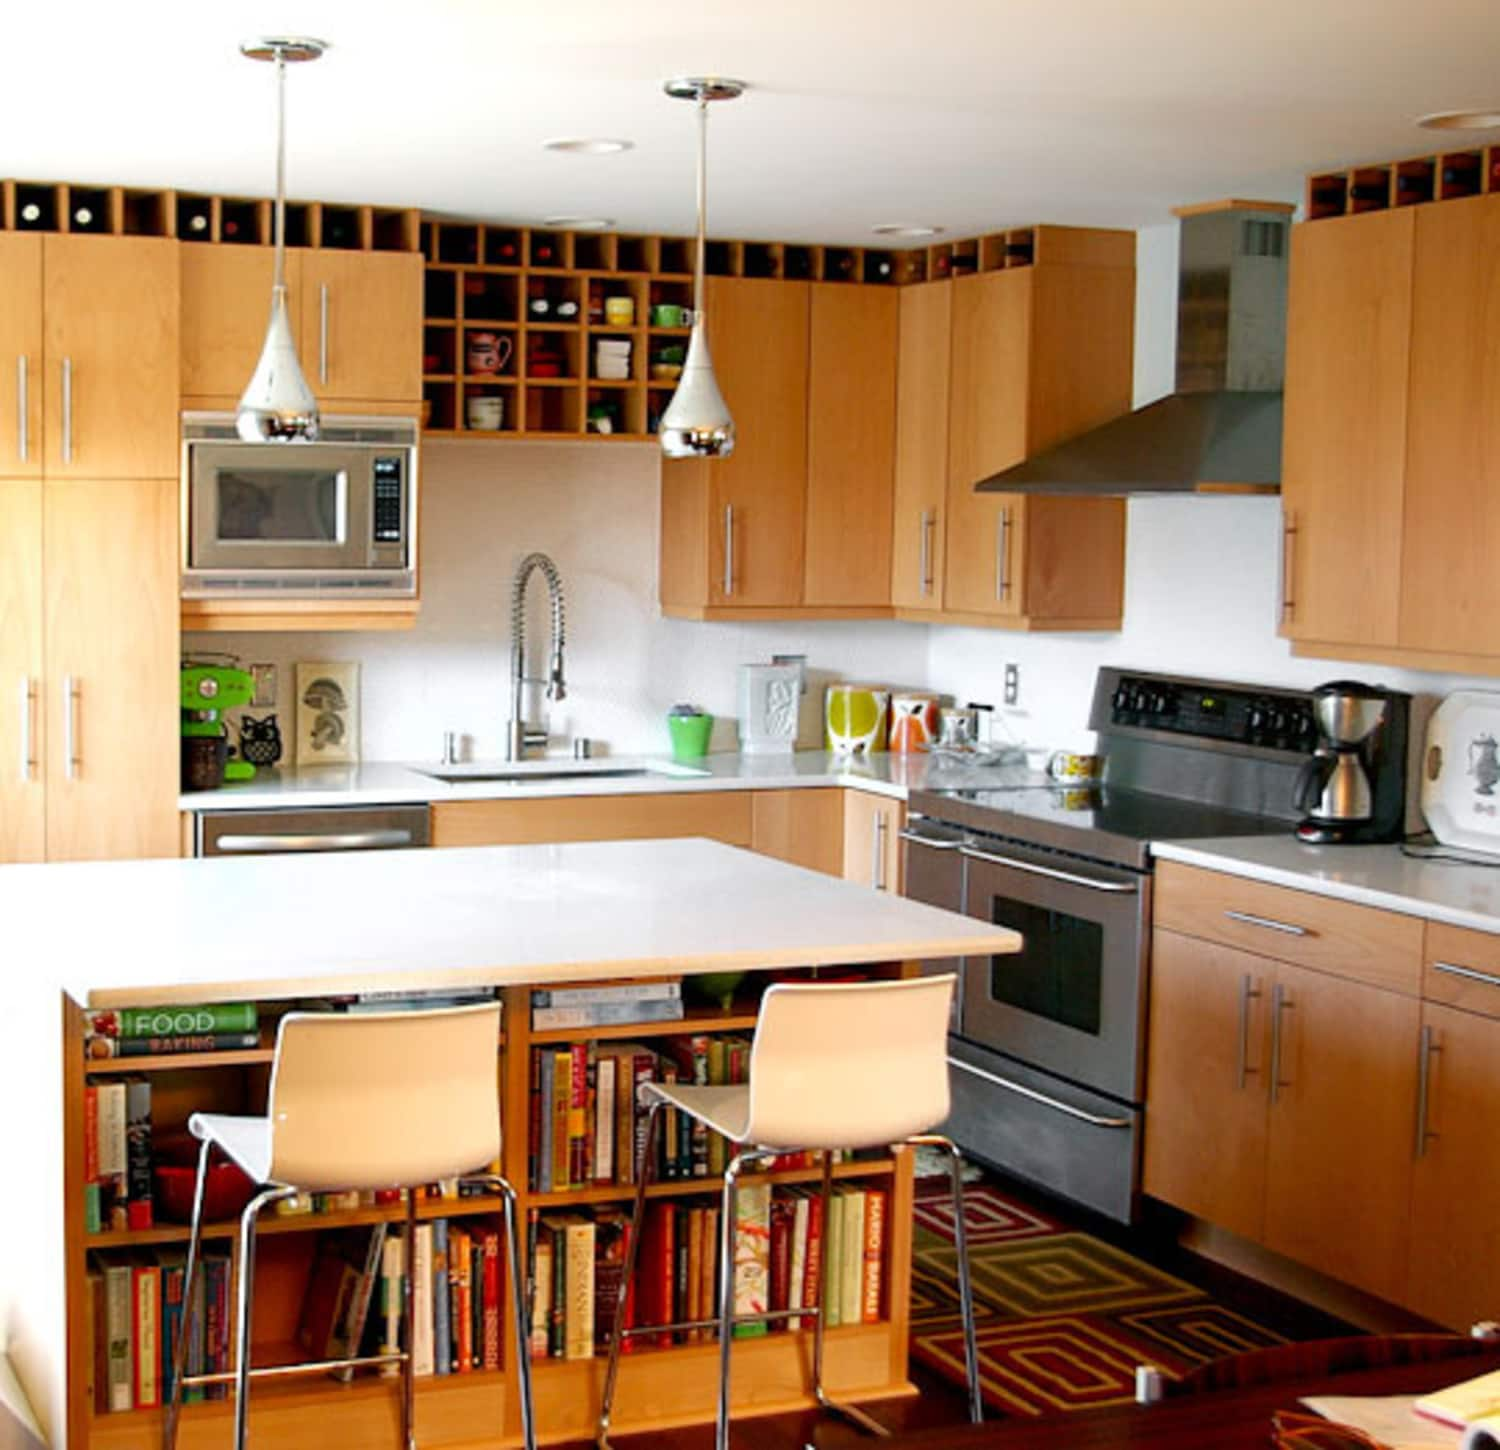 Alison & Kevin's Floor-to-Ceiling Kitchen Remodel In